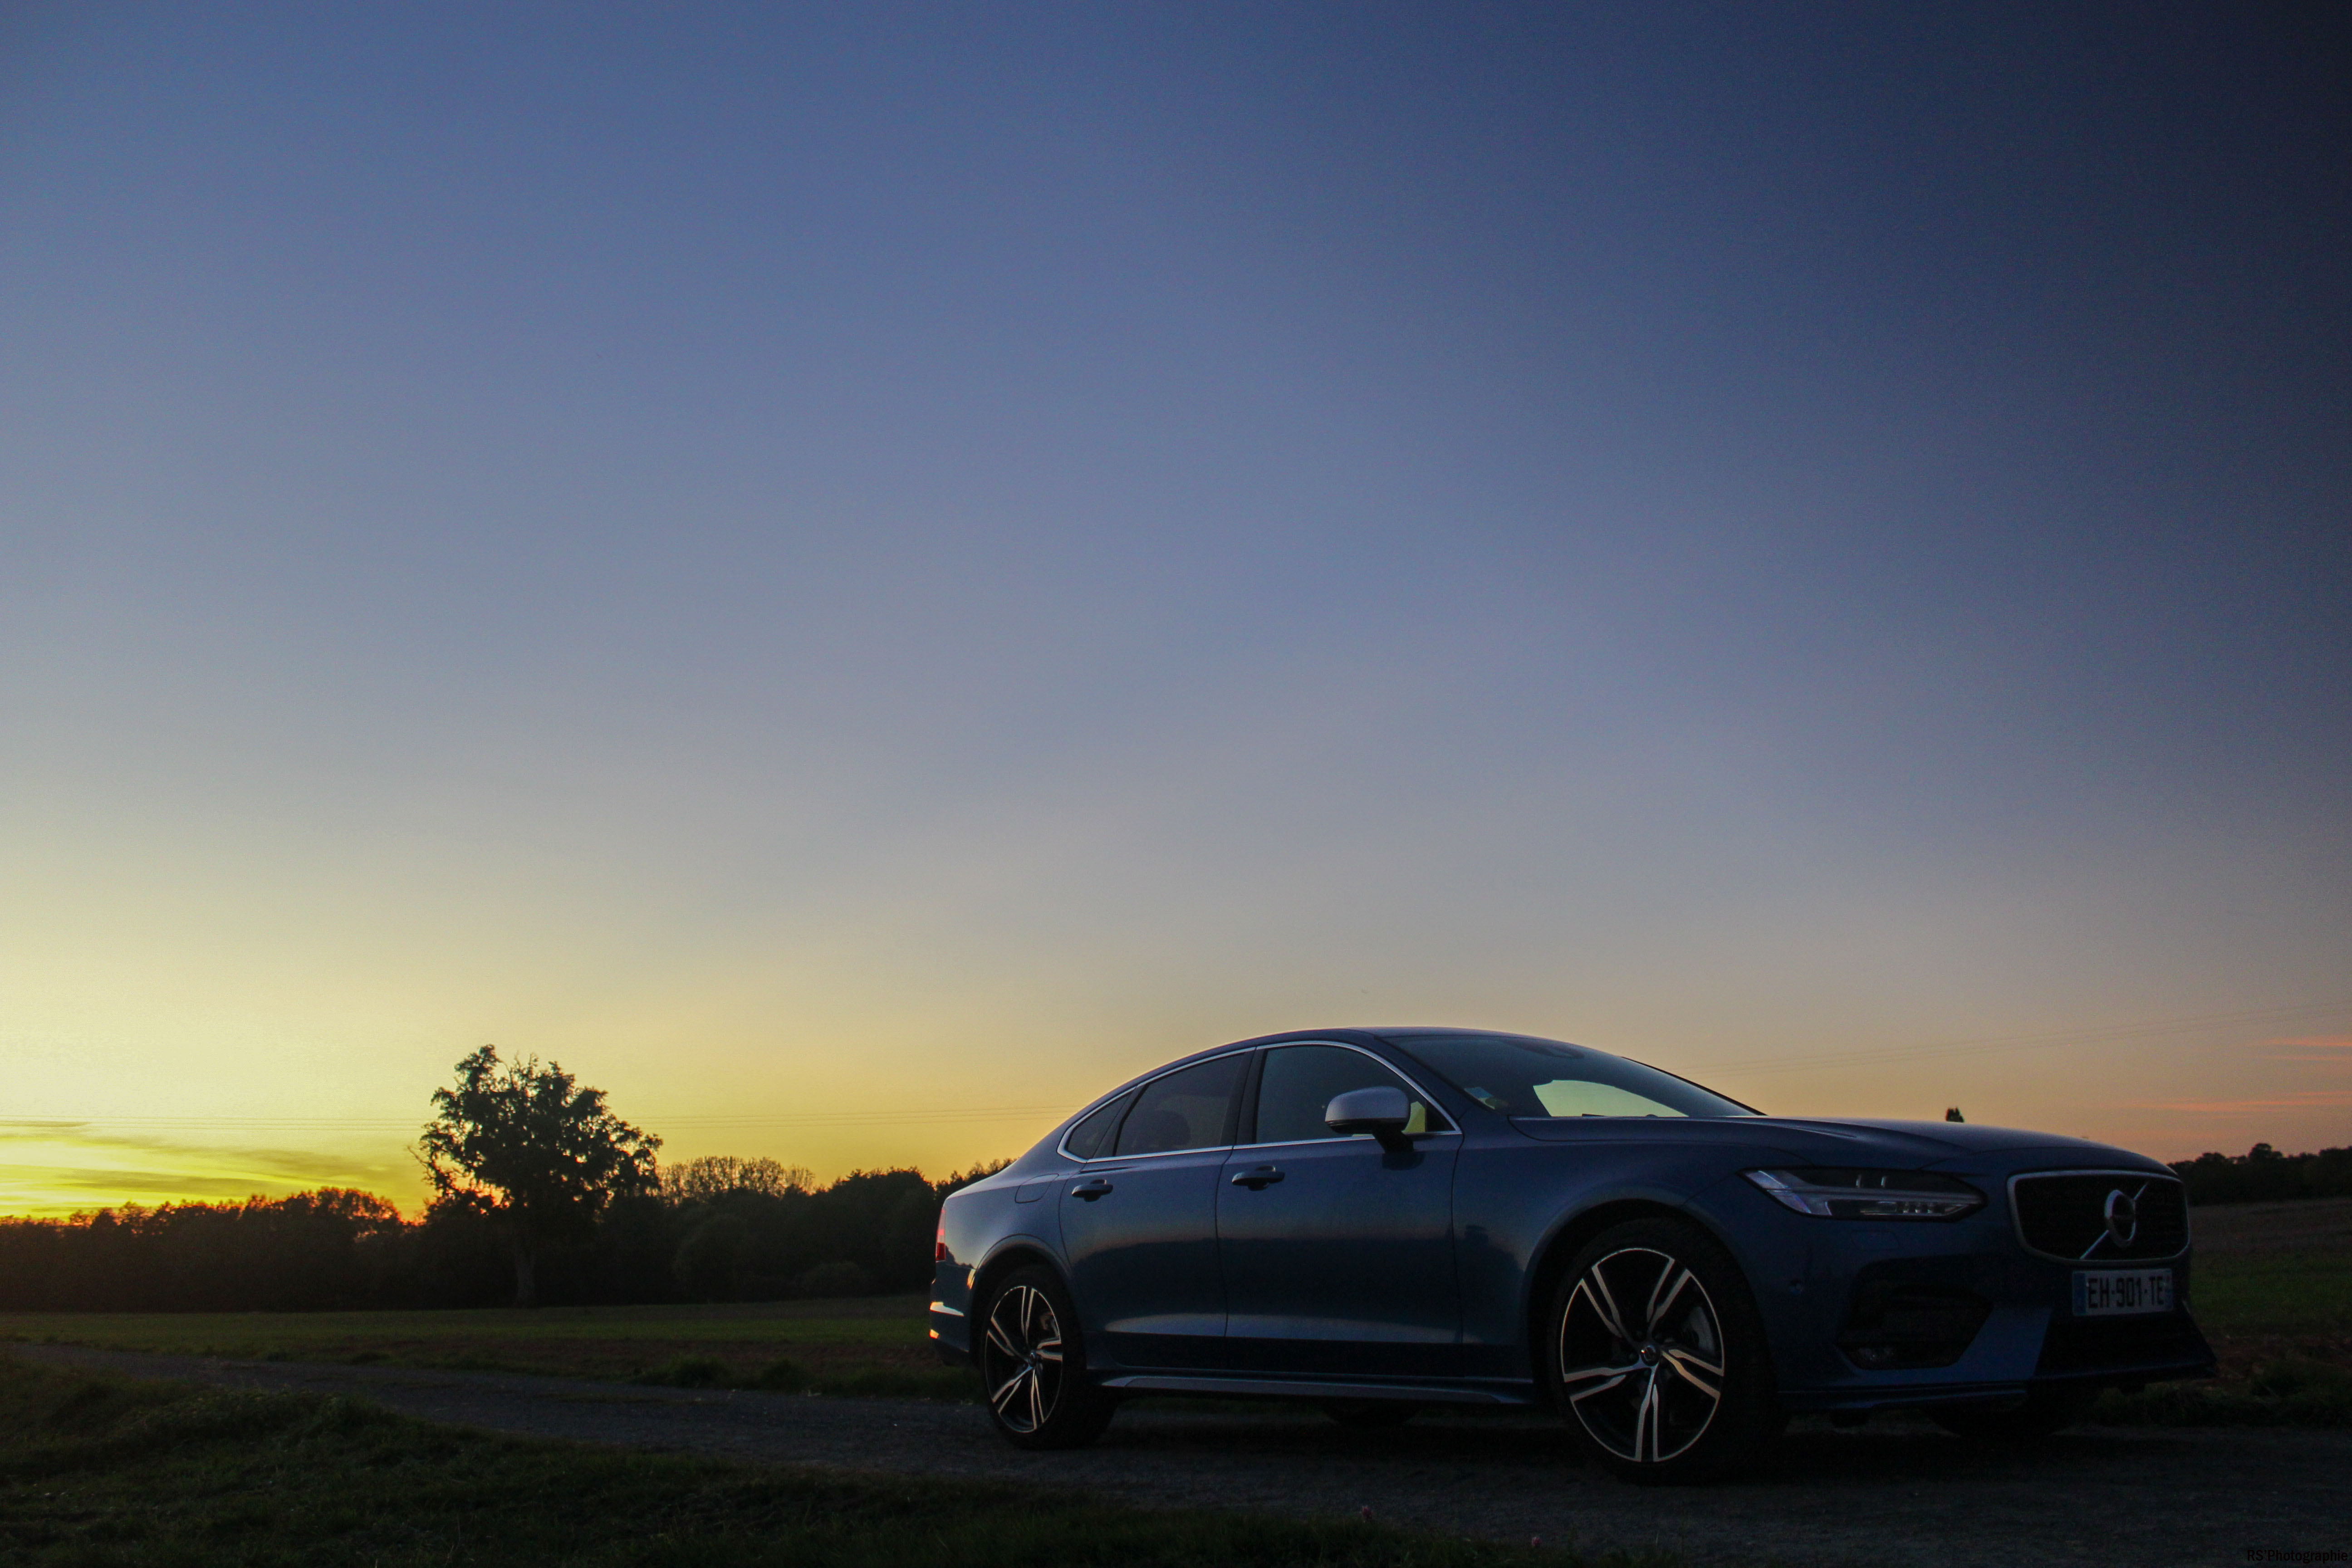 volvos9063-volvo-s90-d3-profil-side-Arnaud Demasier-RSPhotographie